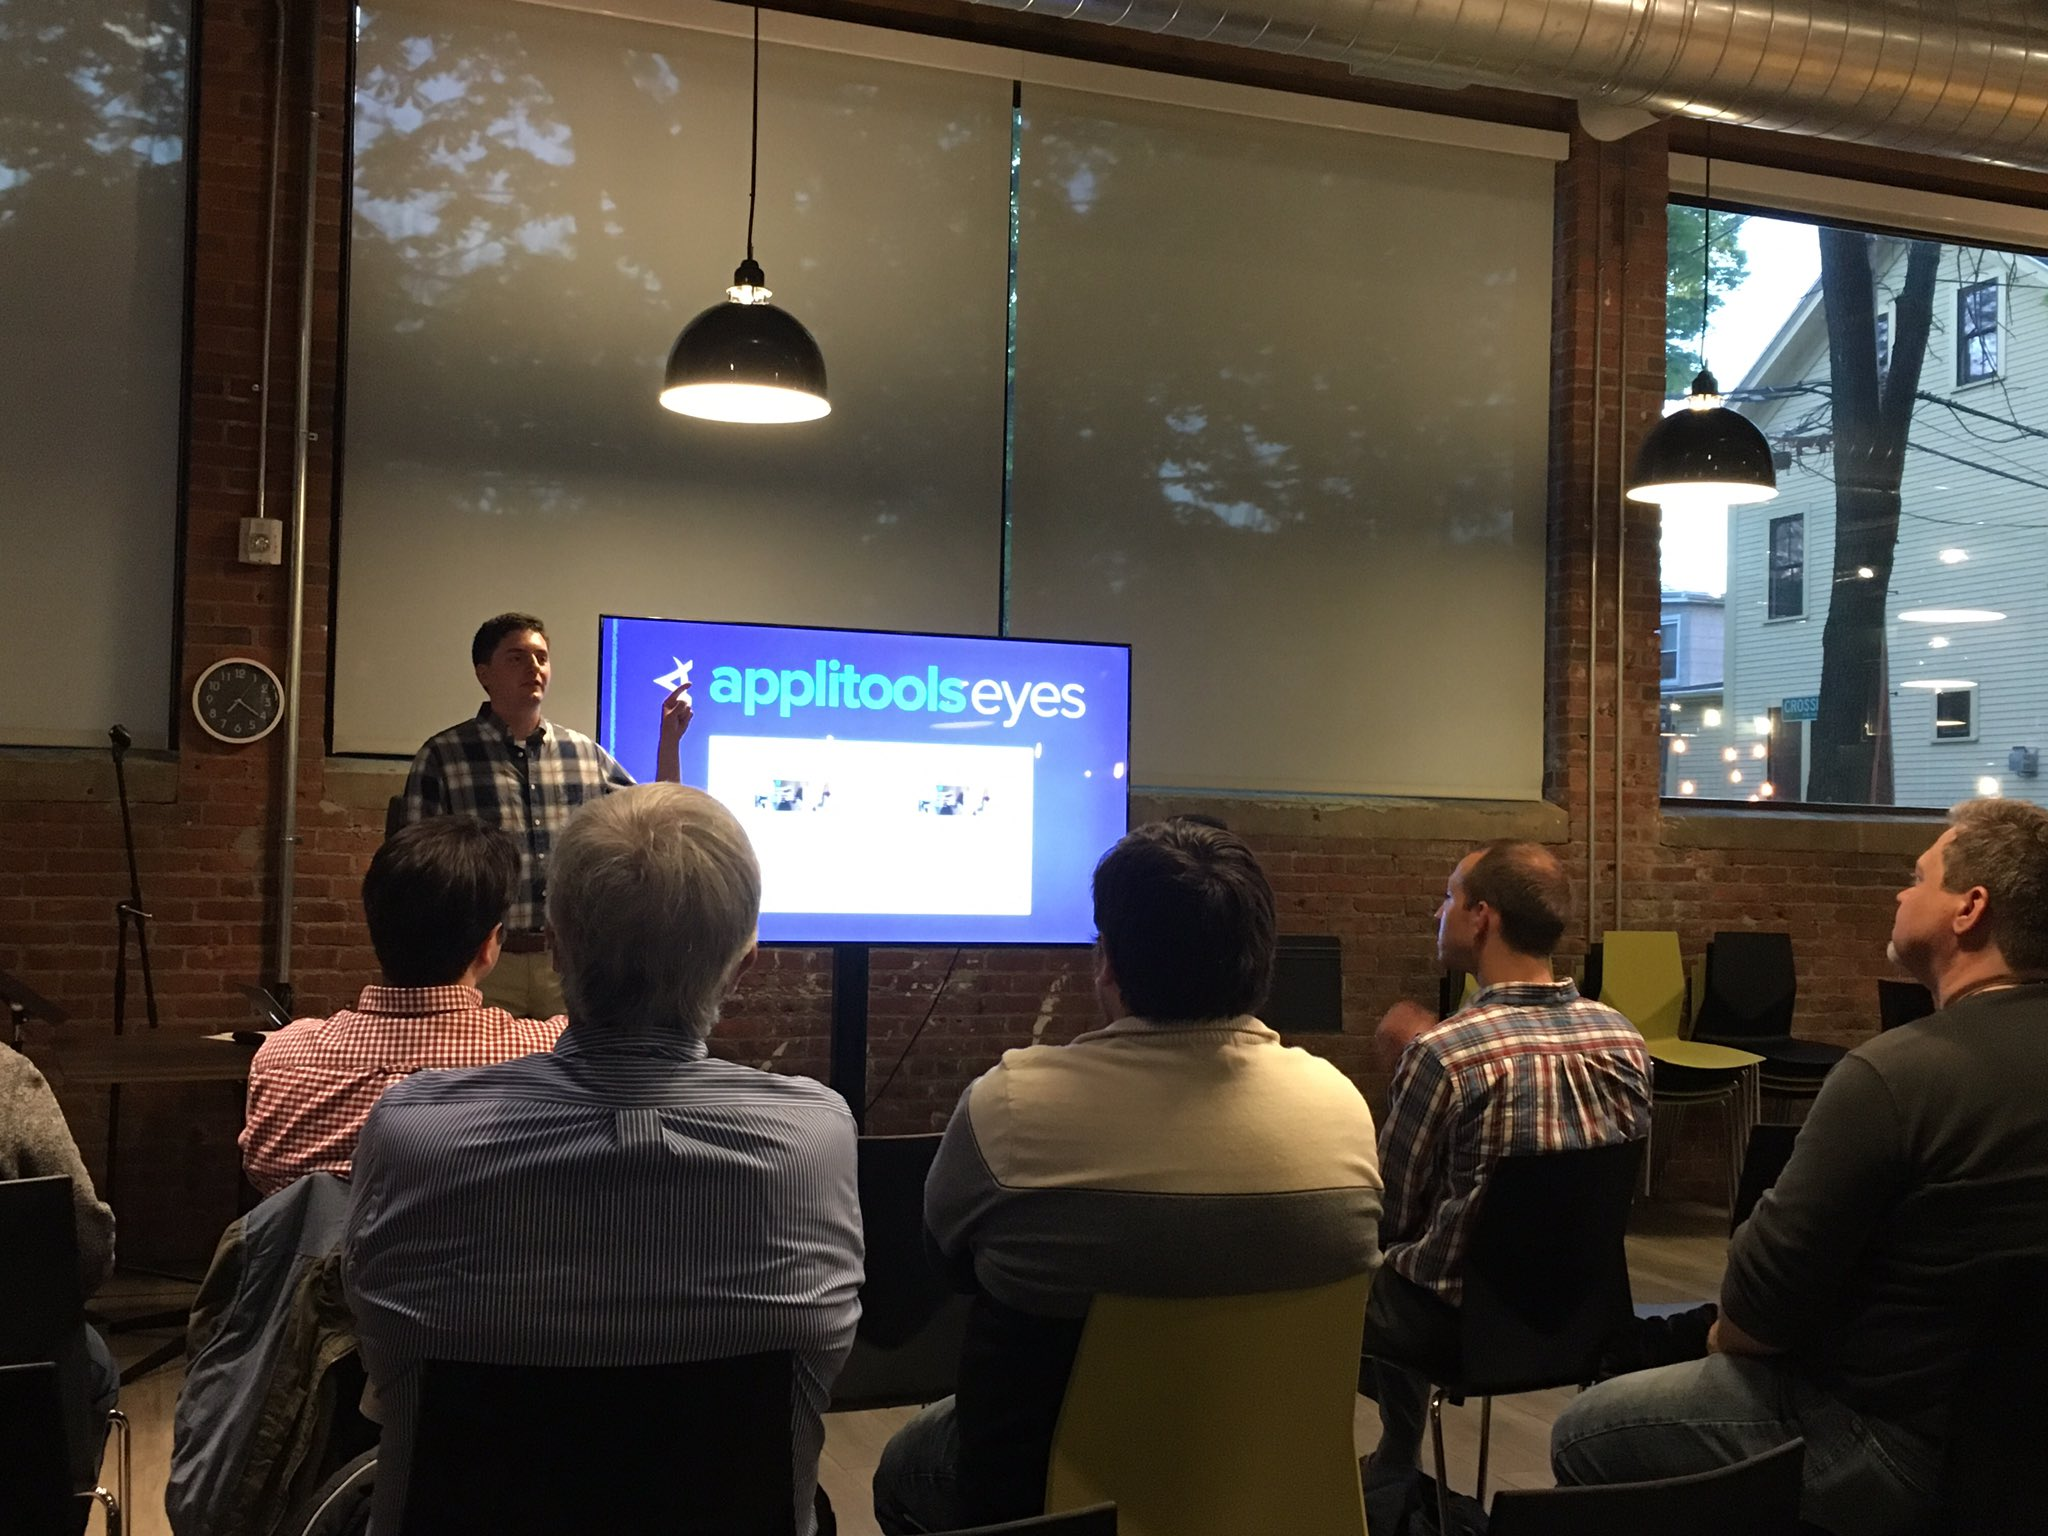 We have @bcjordan, our speaker, talking about @ApplitoolsEyes, tonight's sponsor for @Ministryoftest-Boston. https://t.co/2DQmP5r08Y